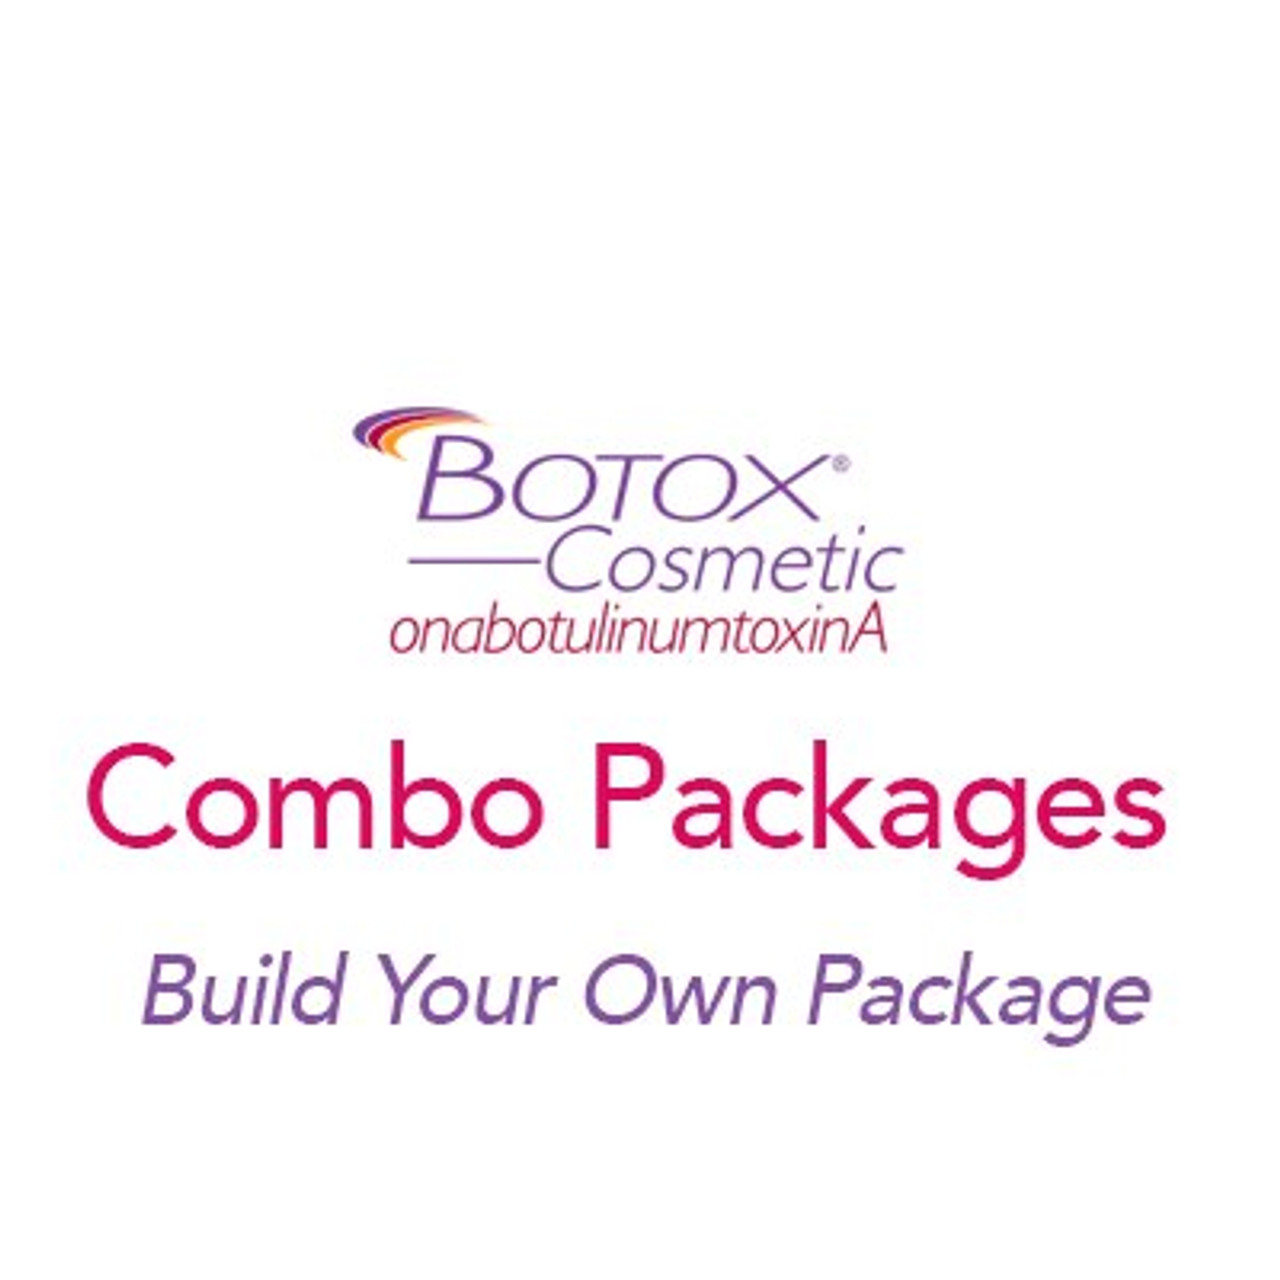 50 unit Botox/Filler Combo Package